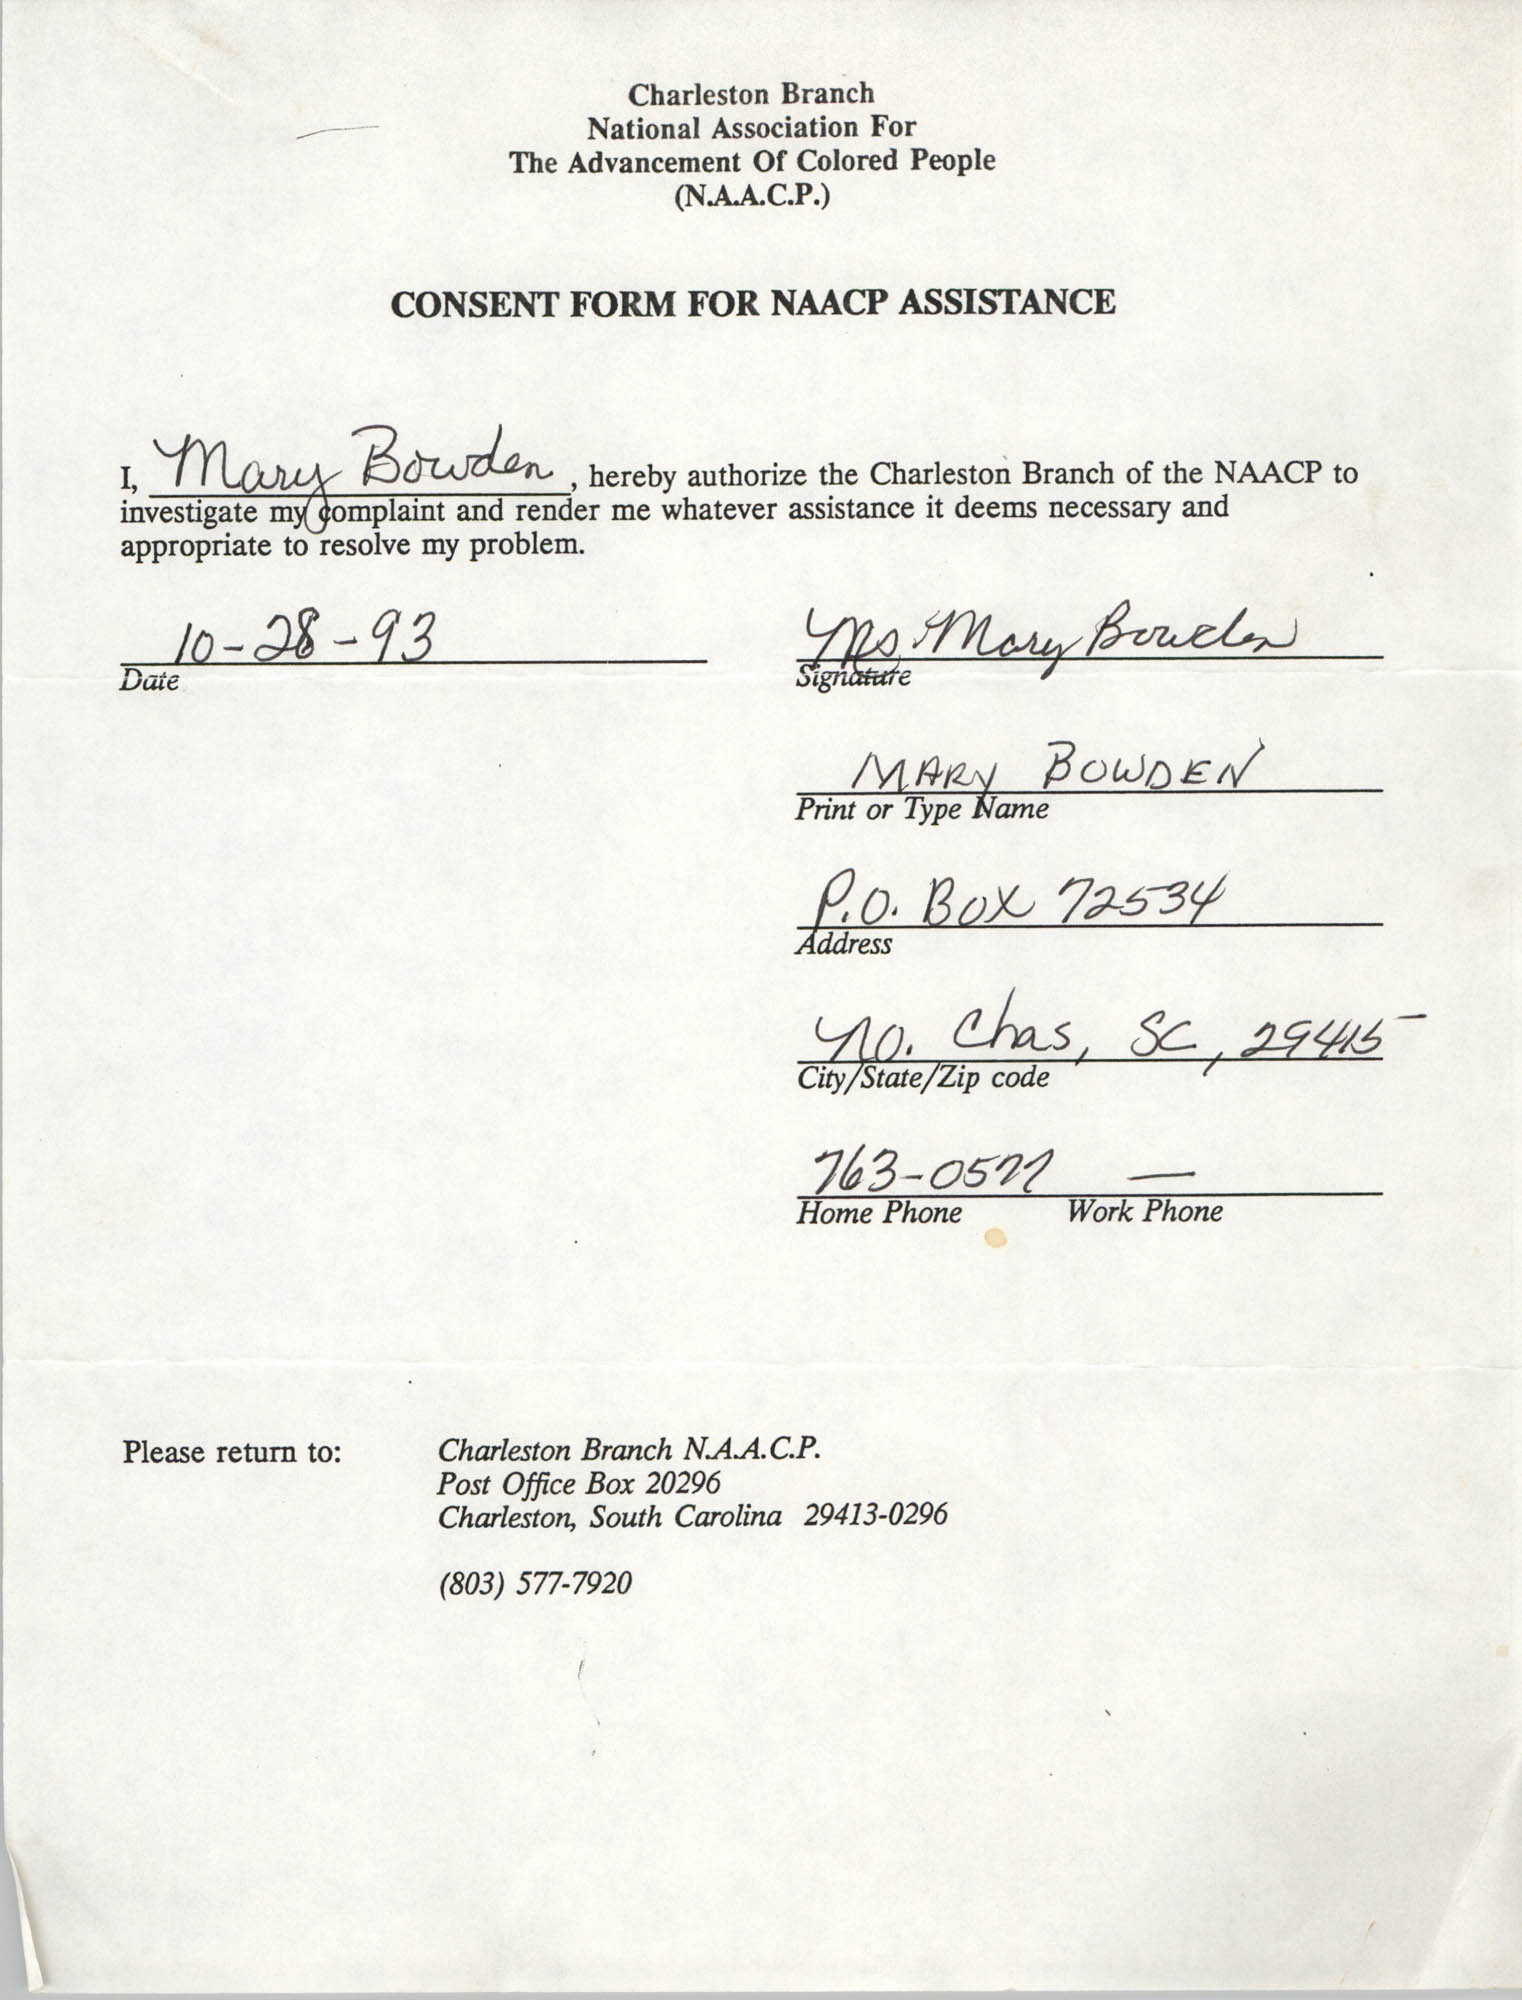 Consent Form for NAACP Assistance Signed by Mary Bowden, October 28, 1993